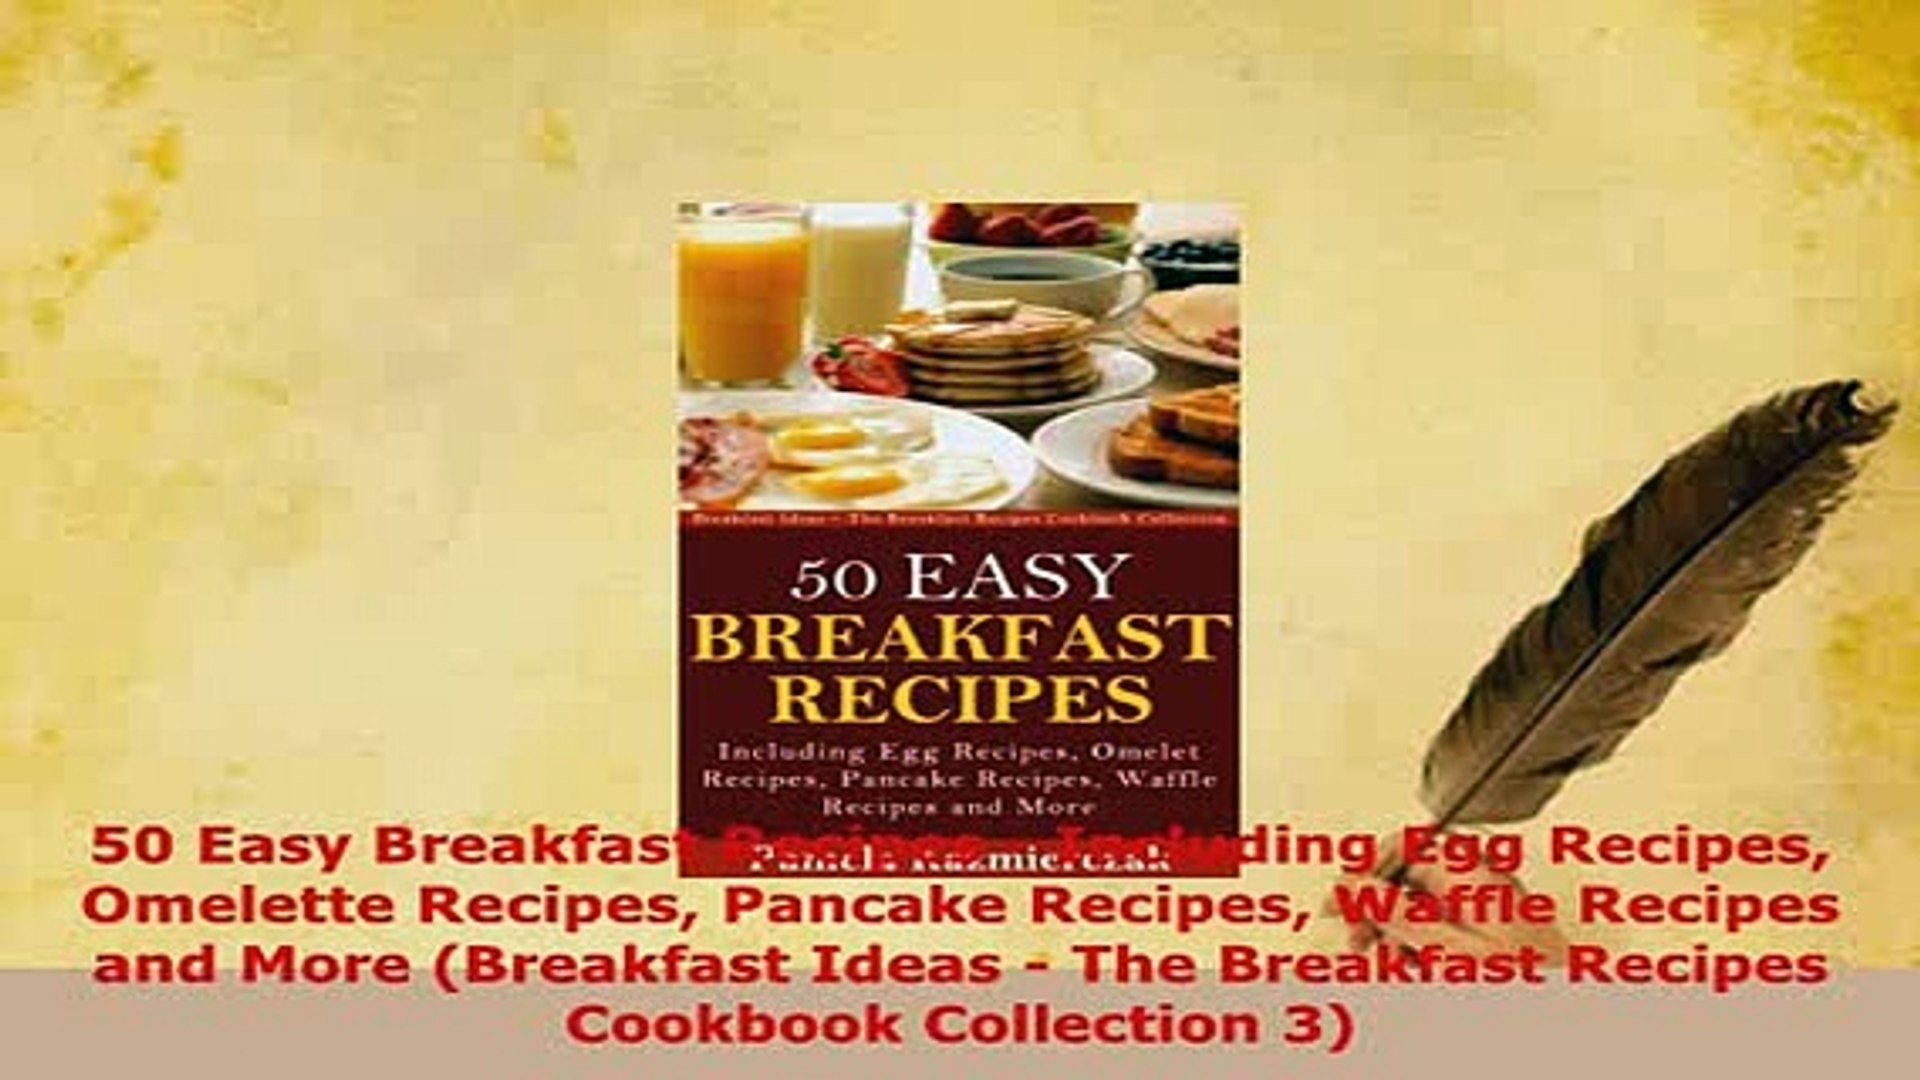 Download  50 Easy Breakfast Recipes  Including Egg Recipes Omelette Recipes Pancake Recipes Waffle D